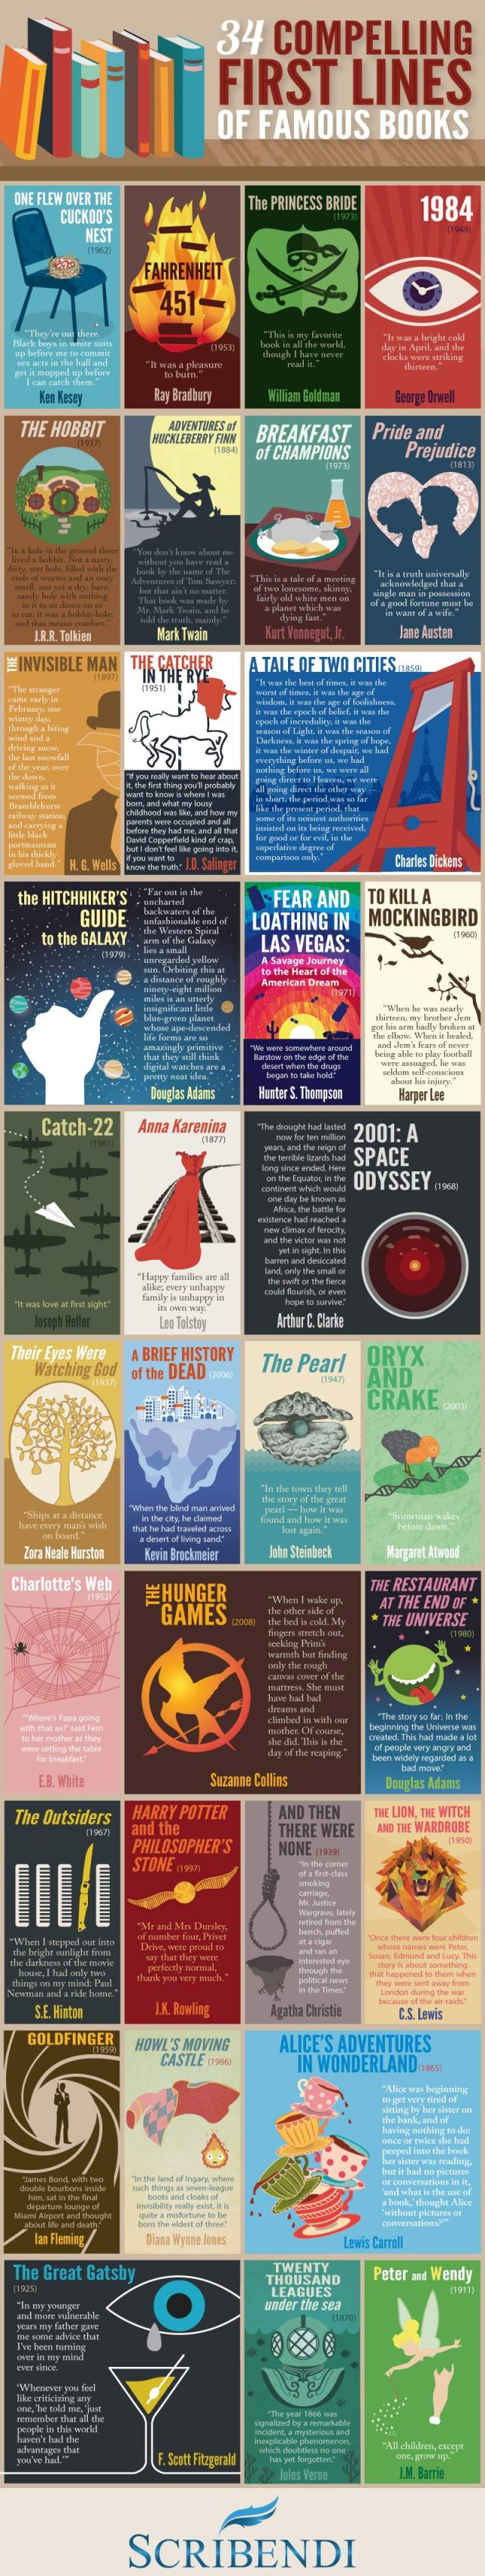 34 Compelling First Lines of Famous Books - Scribendi.com - Infographic